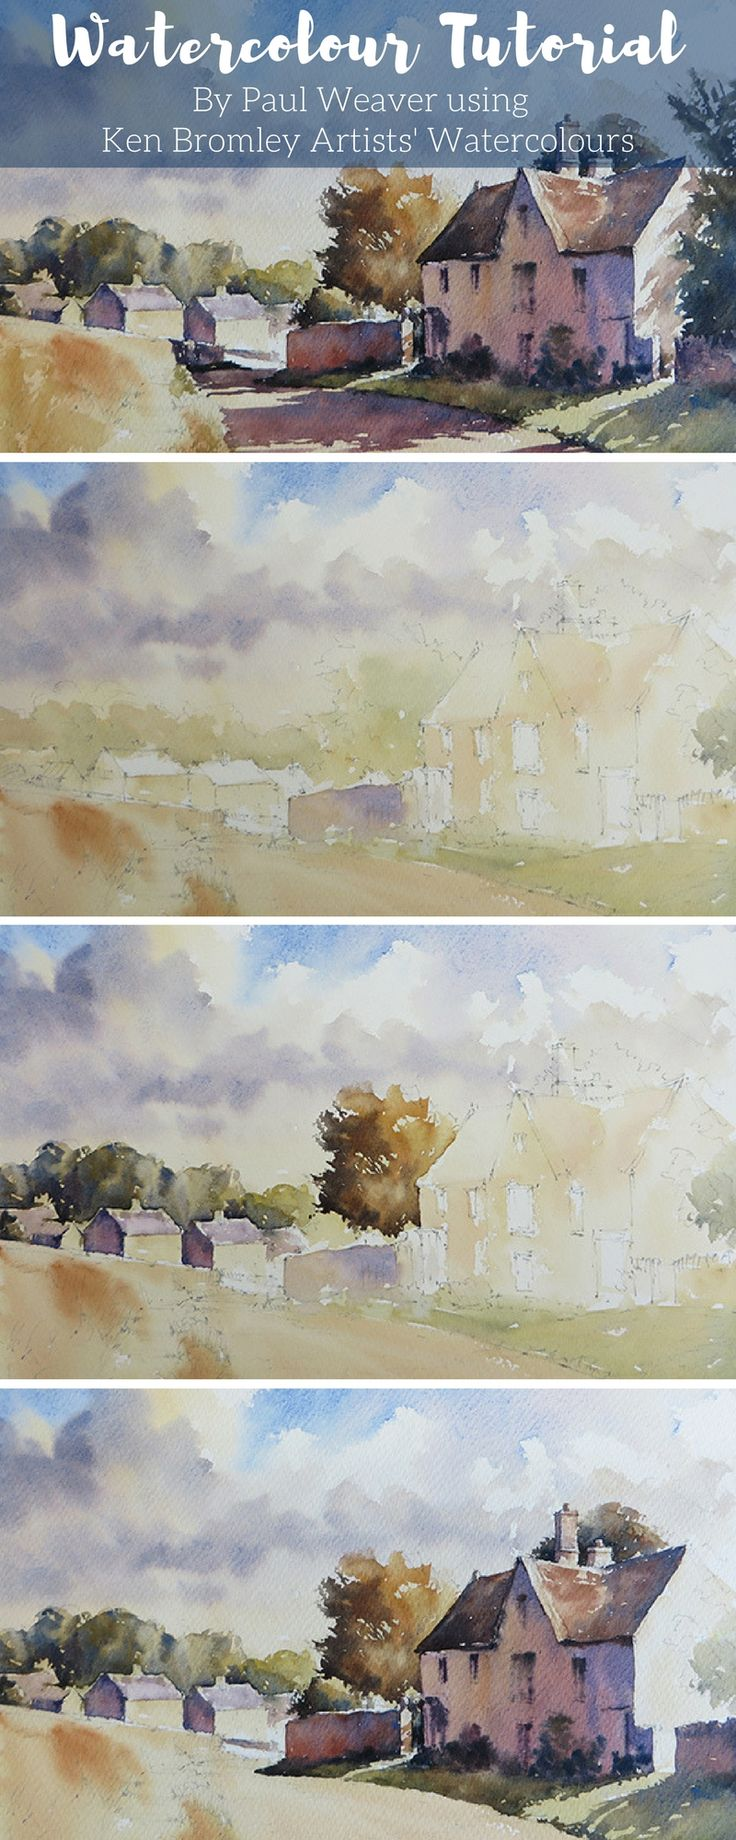 Artist Paul Weaver paints the village of Windrush a beautiful Cotswold village, nestling in the stunning landscape of the Windrush valley and home of the late watercolour master and founder of the Pure Watercolour Society, James Fletcher-Watson. Materials used: • Ken Bromley Artists' Watercolours • Saunders Waterford 140lb Rough #painting #tutorial #watercolour #watercolourtutorial